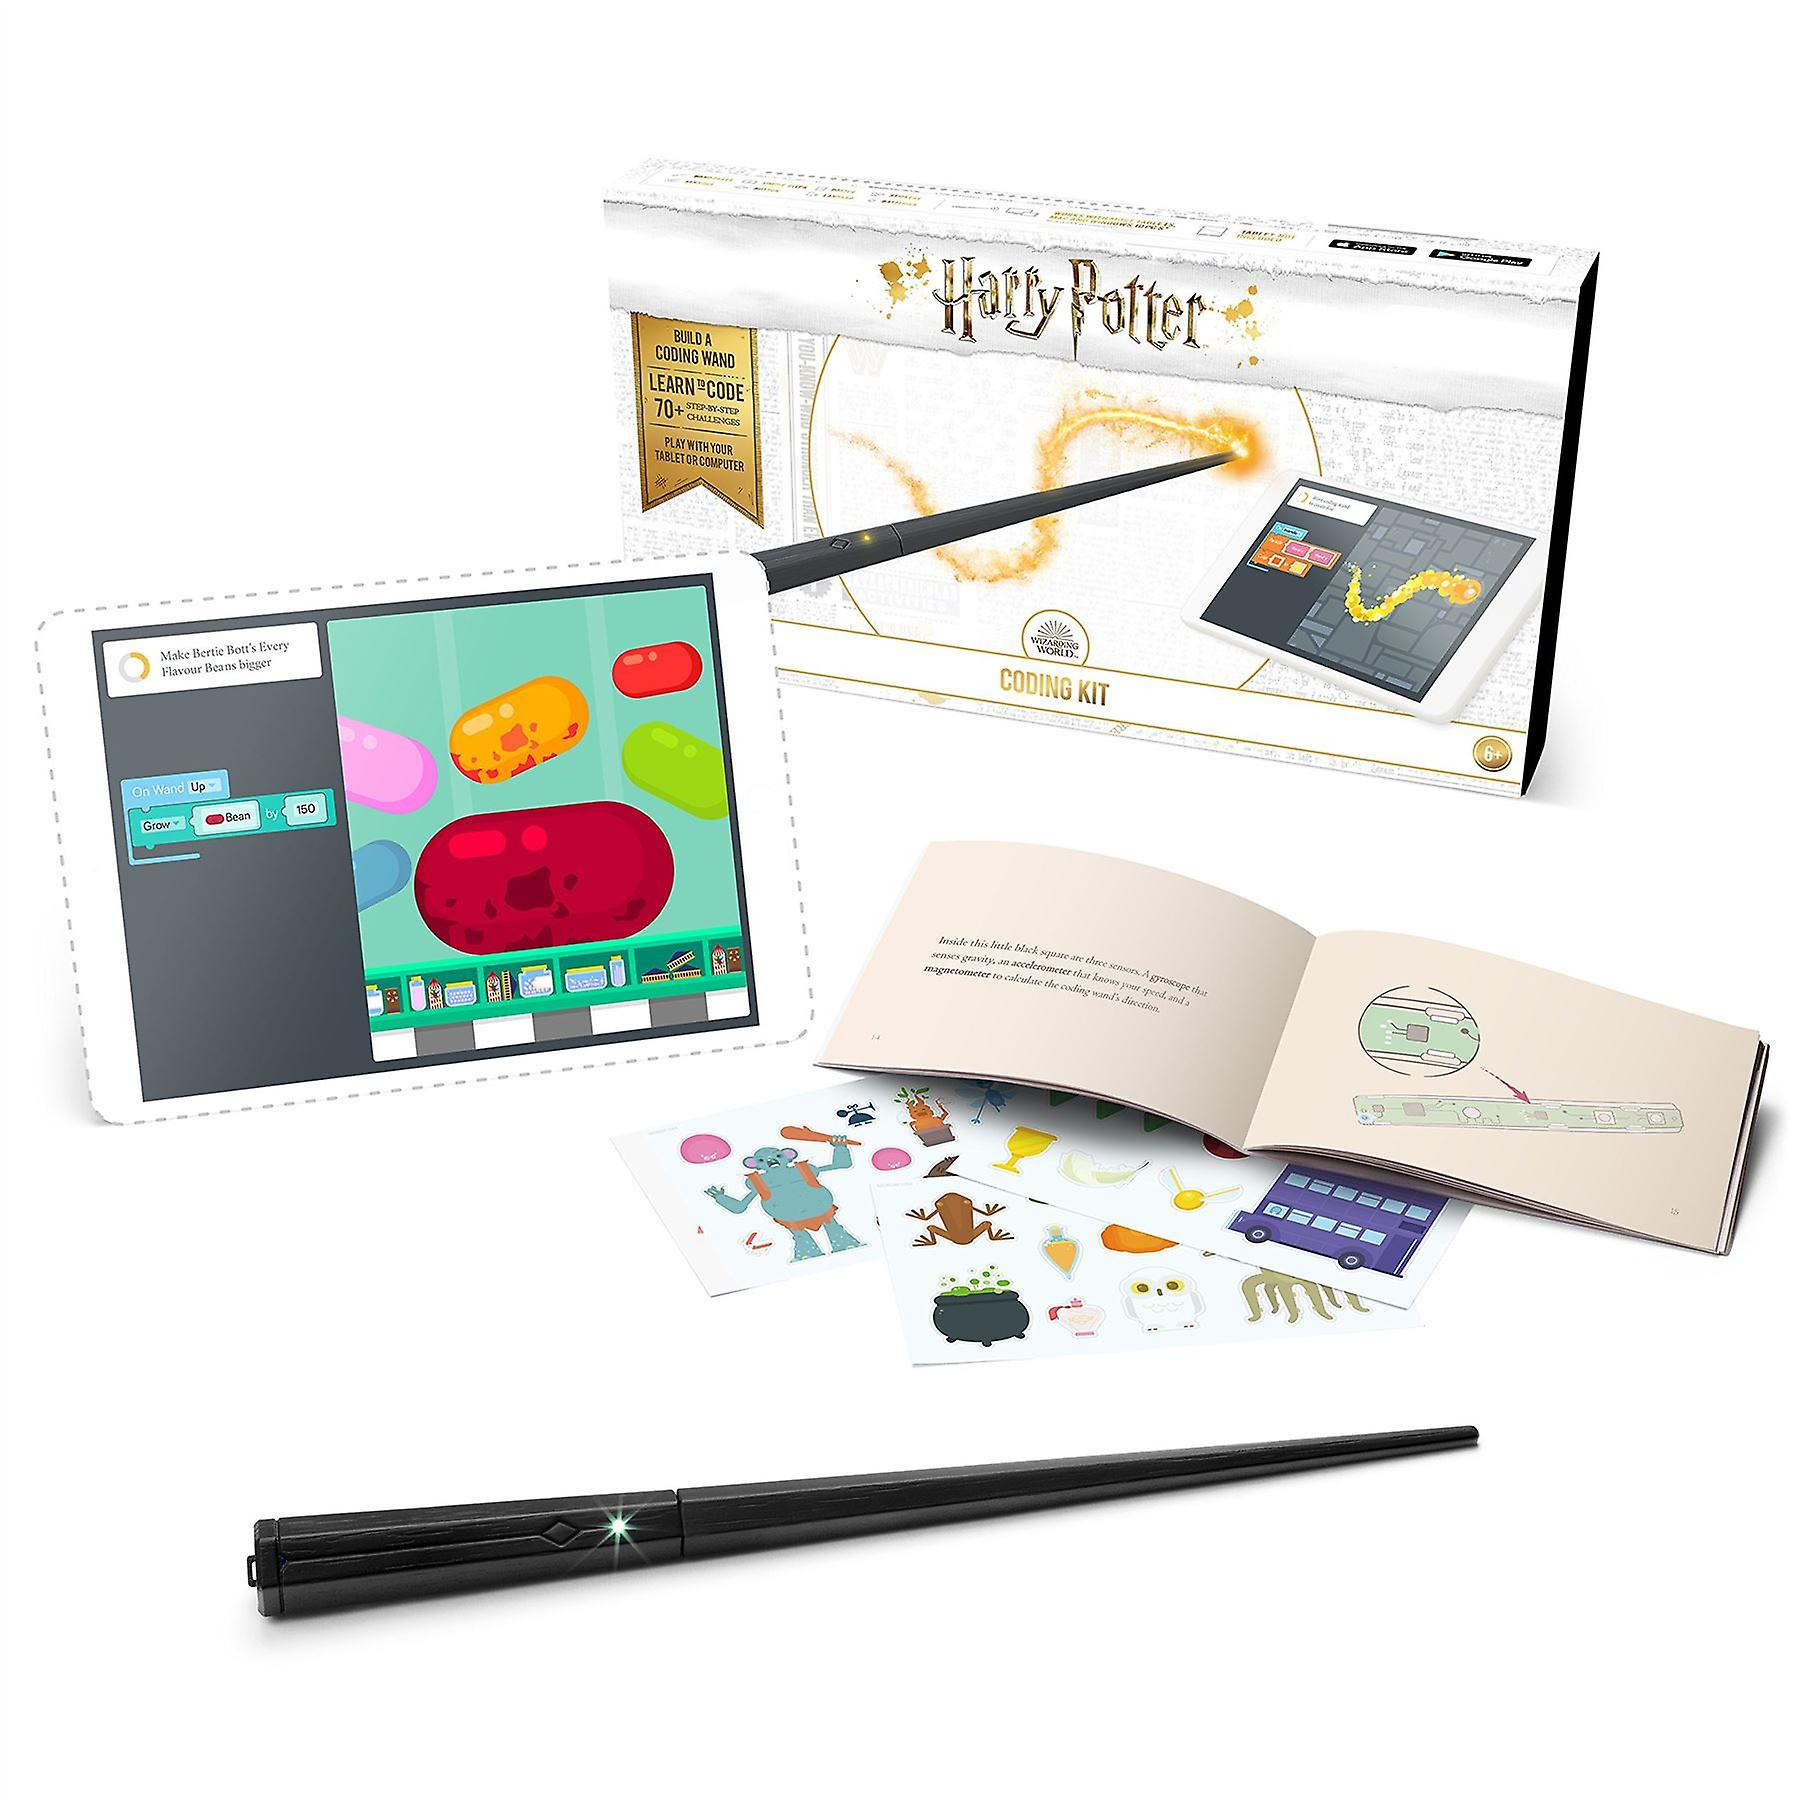 Kano Harry Potter Coding Kit Build a Wand. Learn To Code. Make Magic.